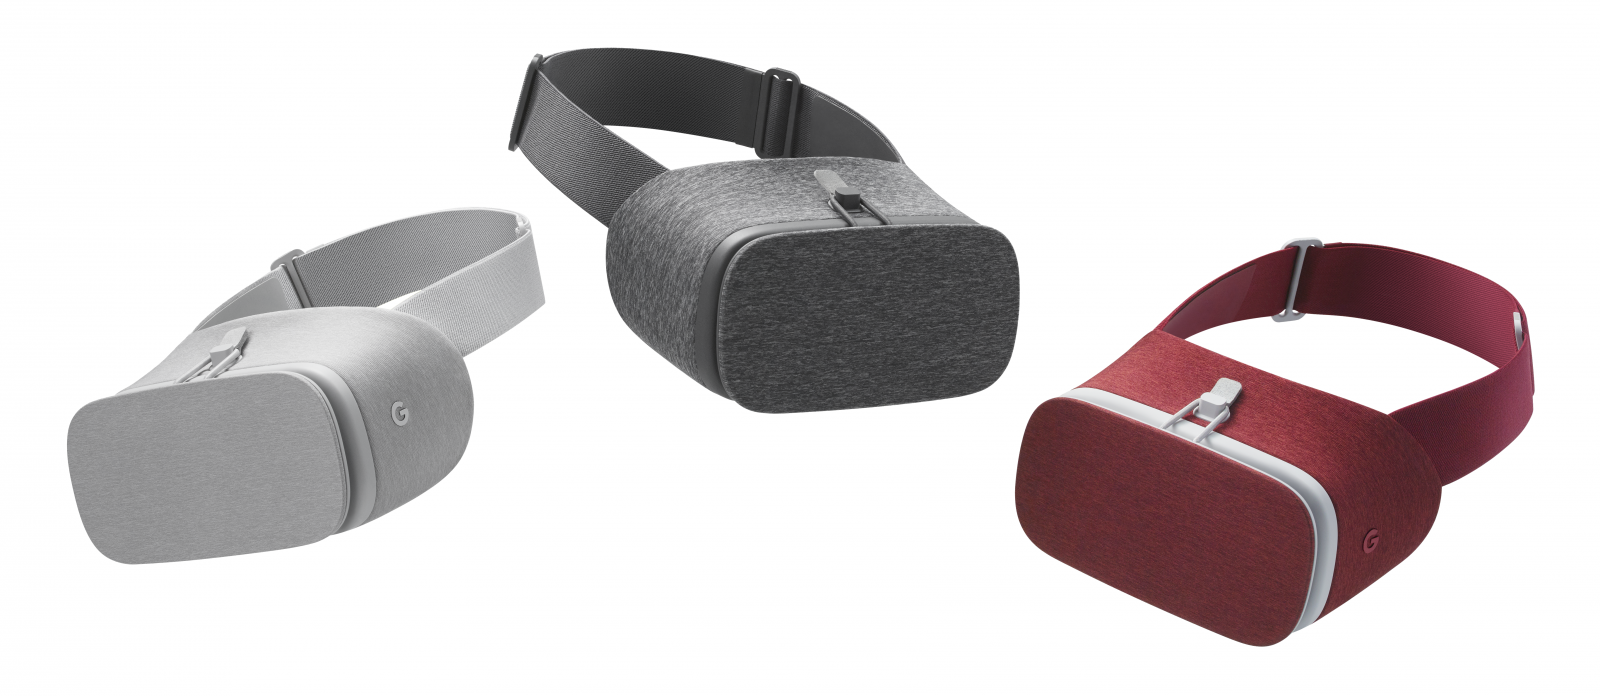 Daydream View colour options